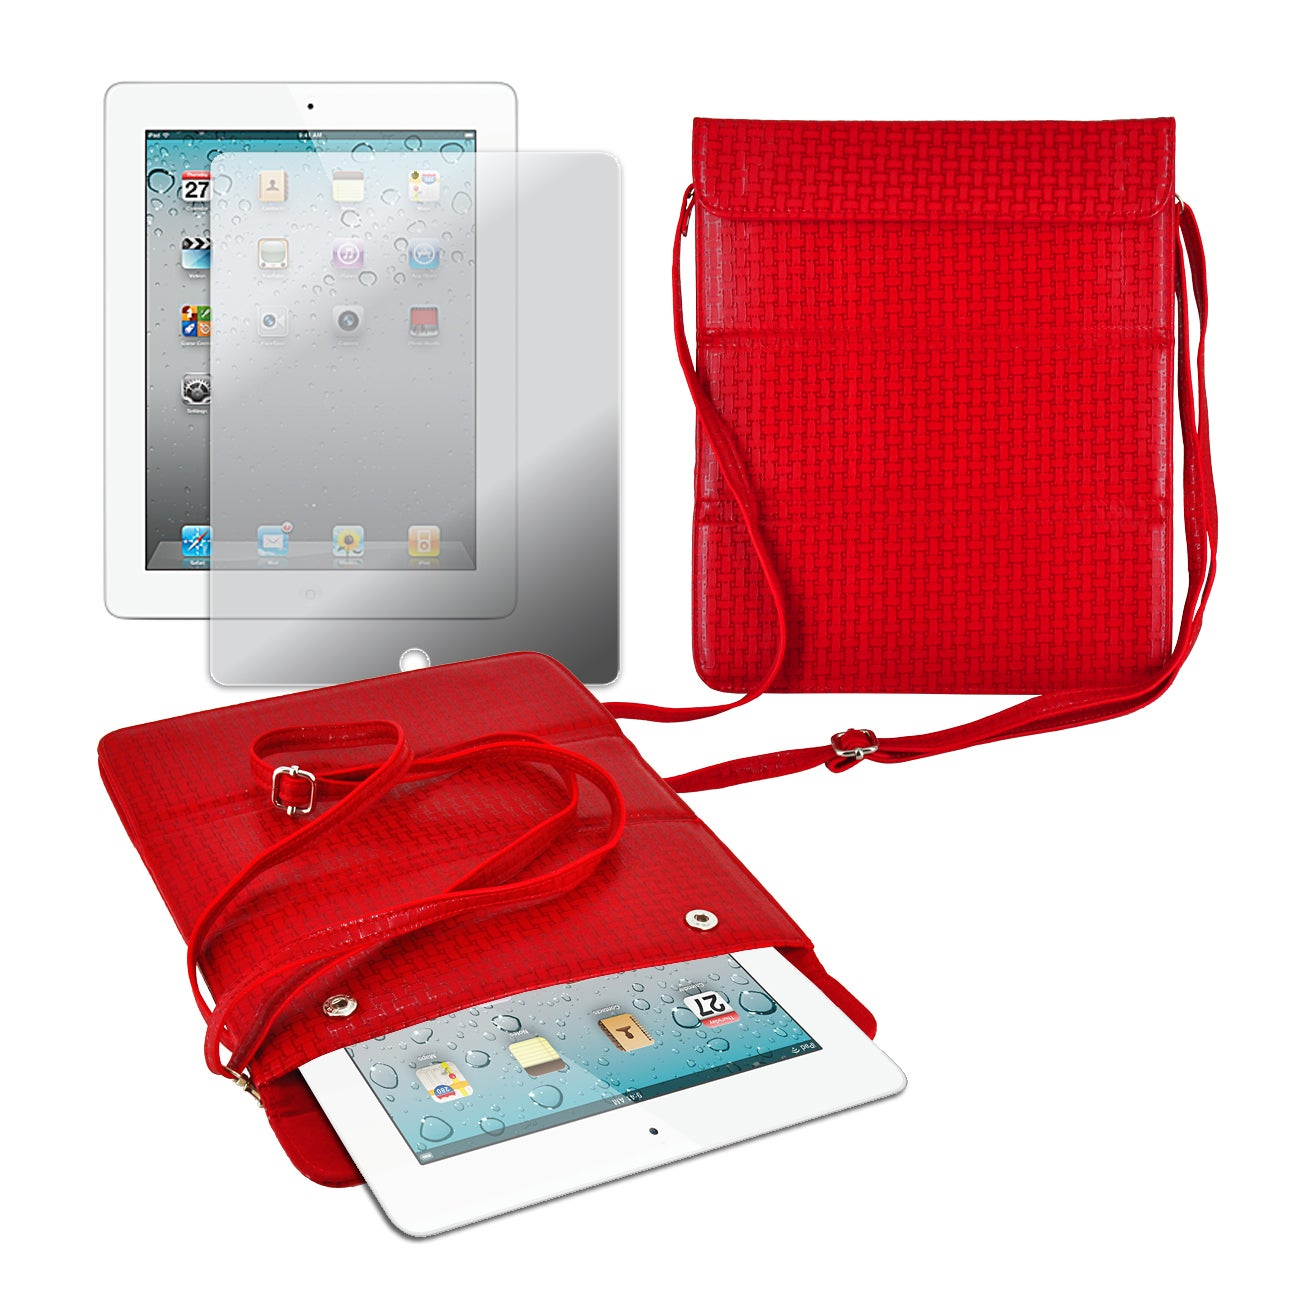 Premium Leatherette Shoulder Purse with Screen Protector for iPad 2 and iPad 3 - Thumbnail 0